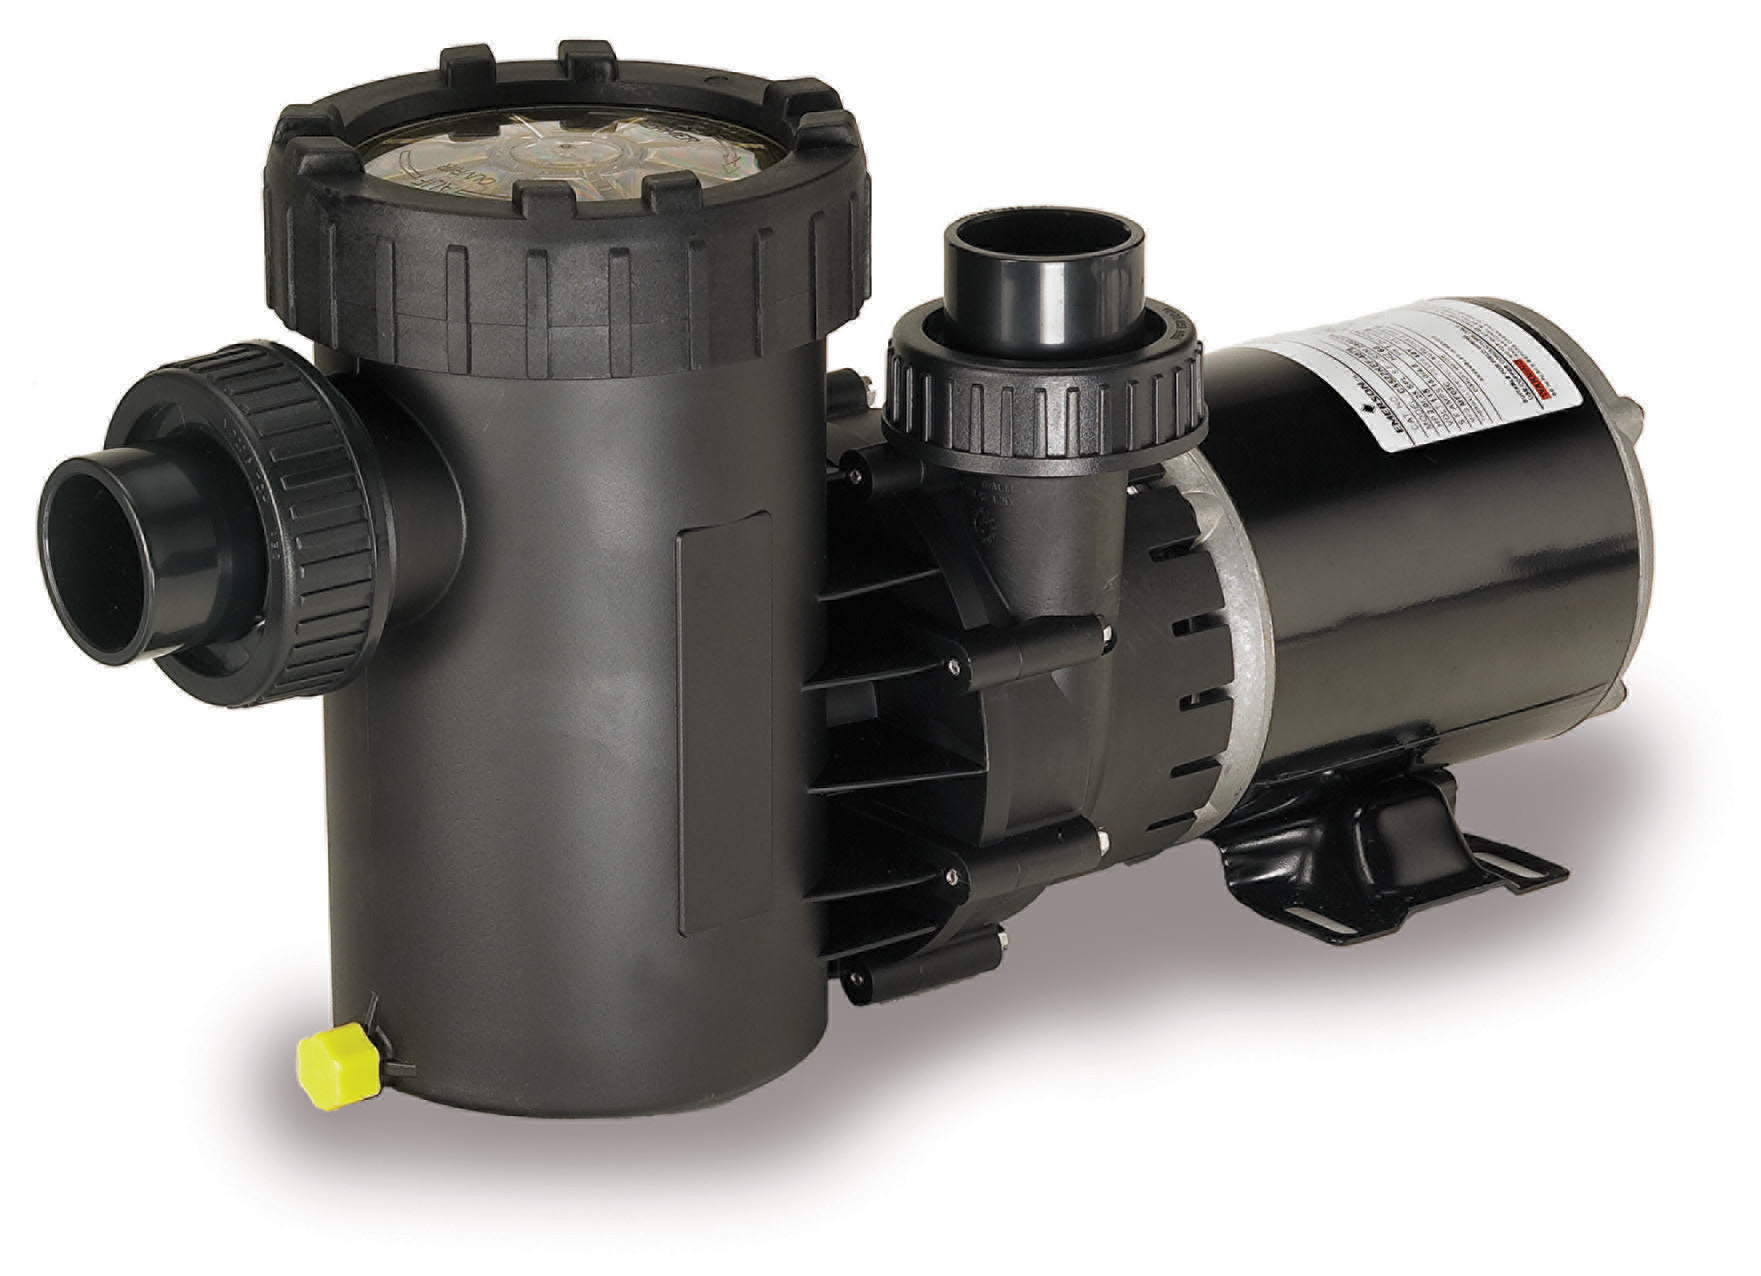 Speck®E71 - The Speck Model E71 medium head pump has been engineered for durability and quiet performance with economy in mind. The all-around pool pump with extra large basket, the E71 is ideally suited for above-ground and on-ground pools.